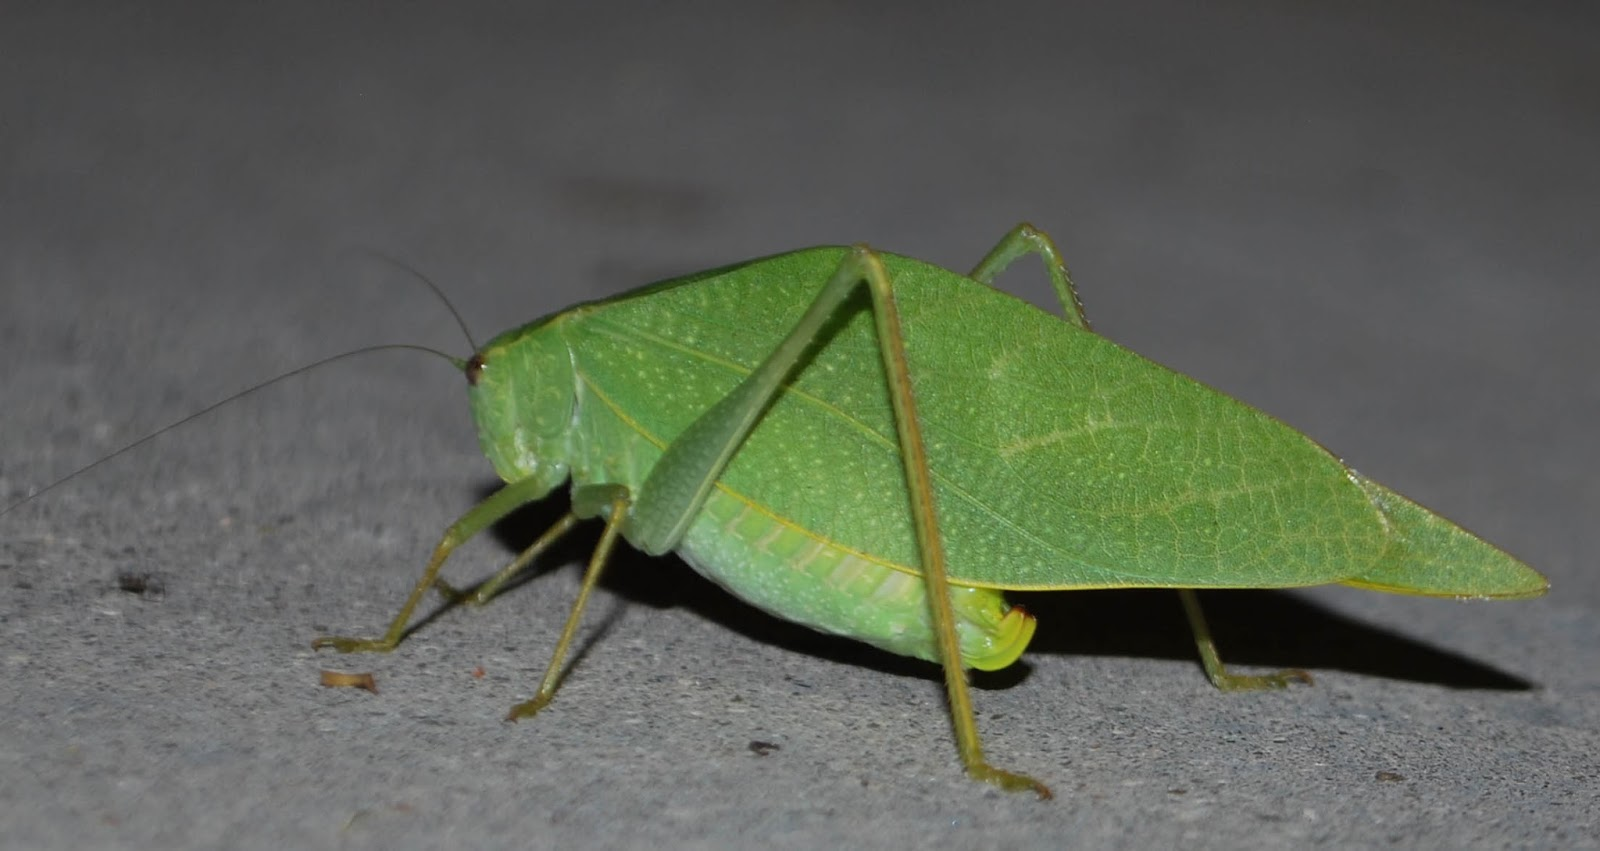 The Scratching Post: Green, Leaf-shaped Grasshopper